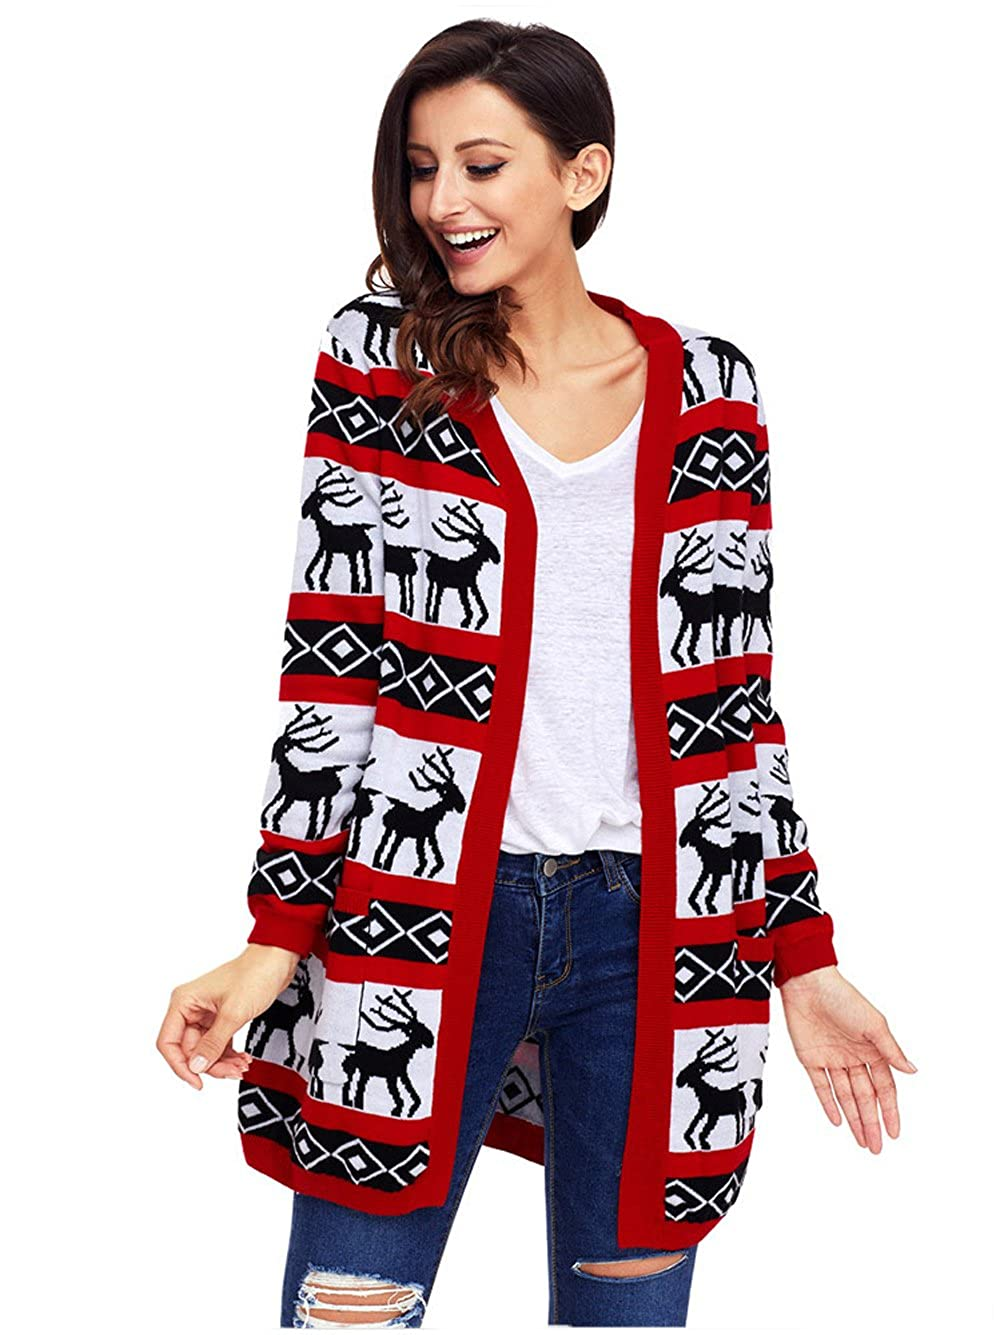 SheShy Women Sweater Jumper, Casual Open Front Long Sleeve Cardigan Sweater With Pocket